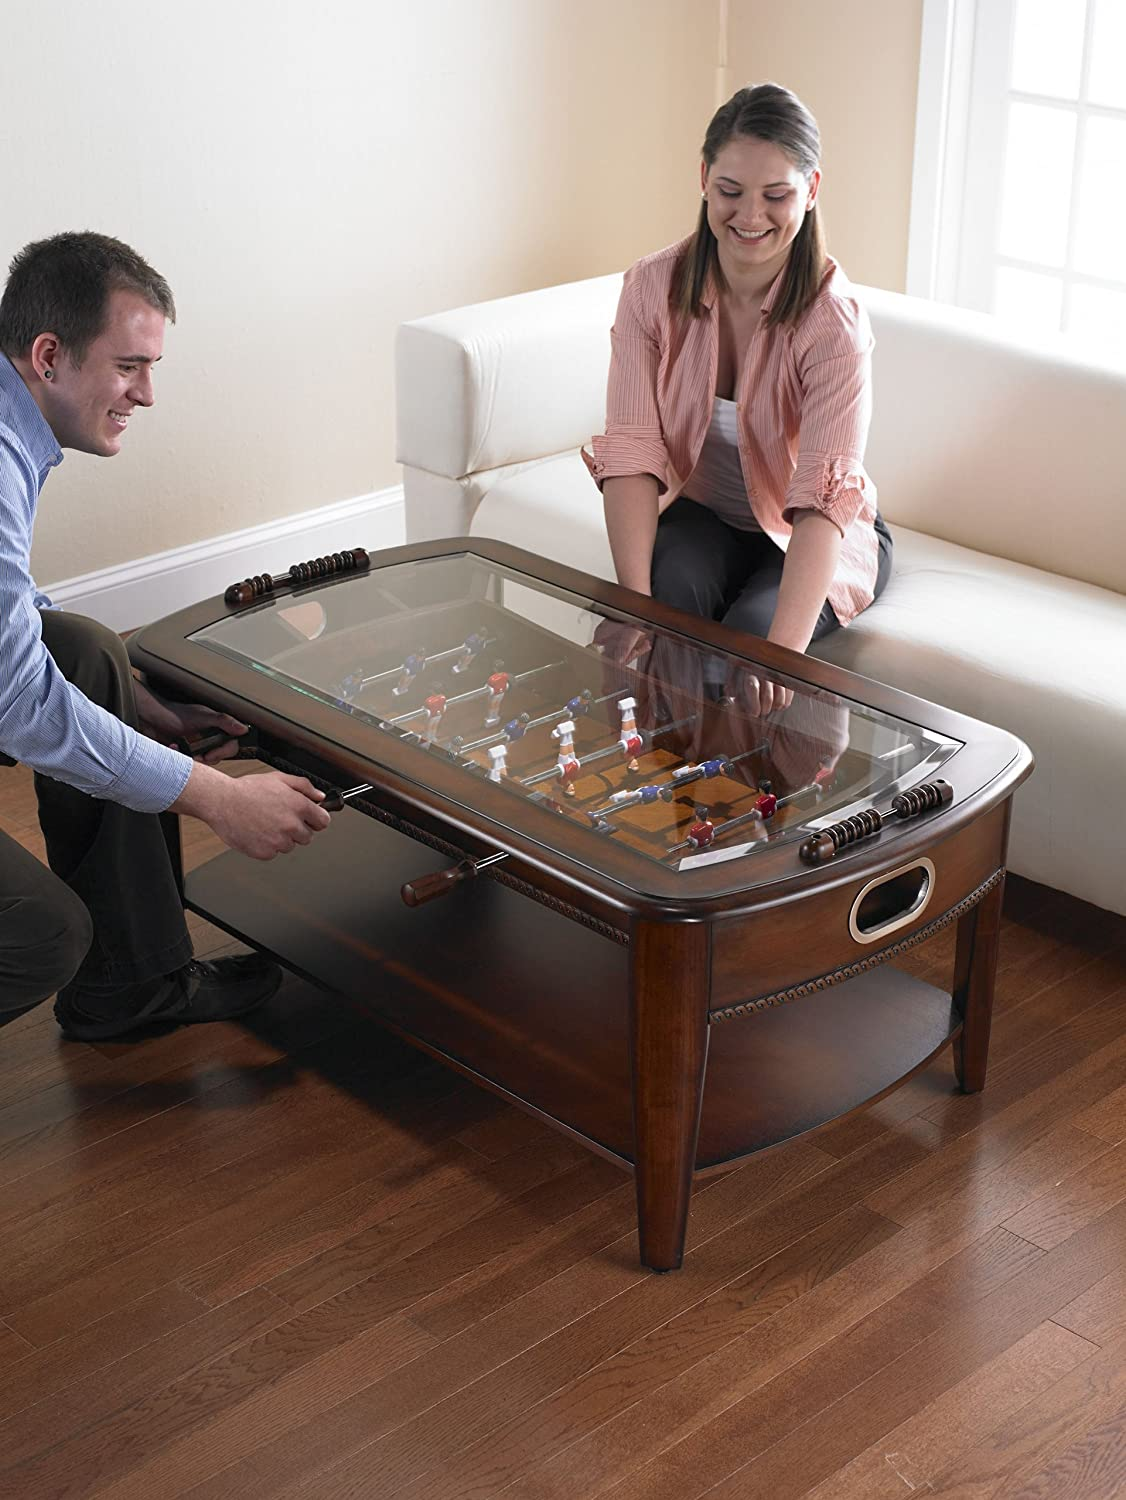 - Amazon.com: Chicago Gaming Signature Foosball Coffee Table: Sports